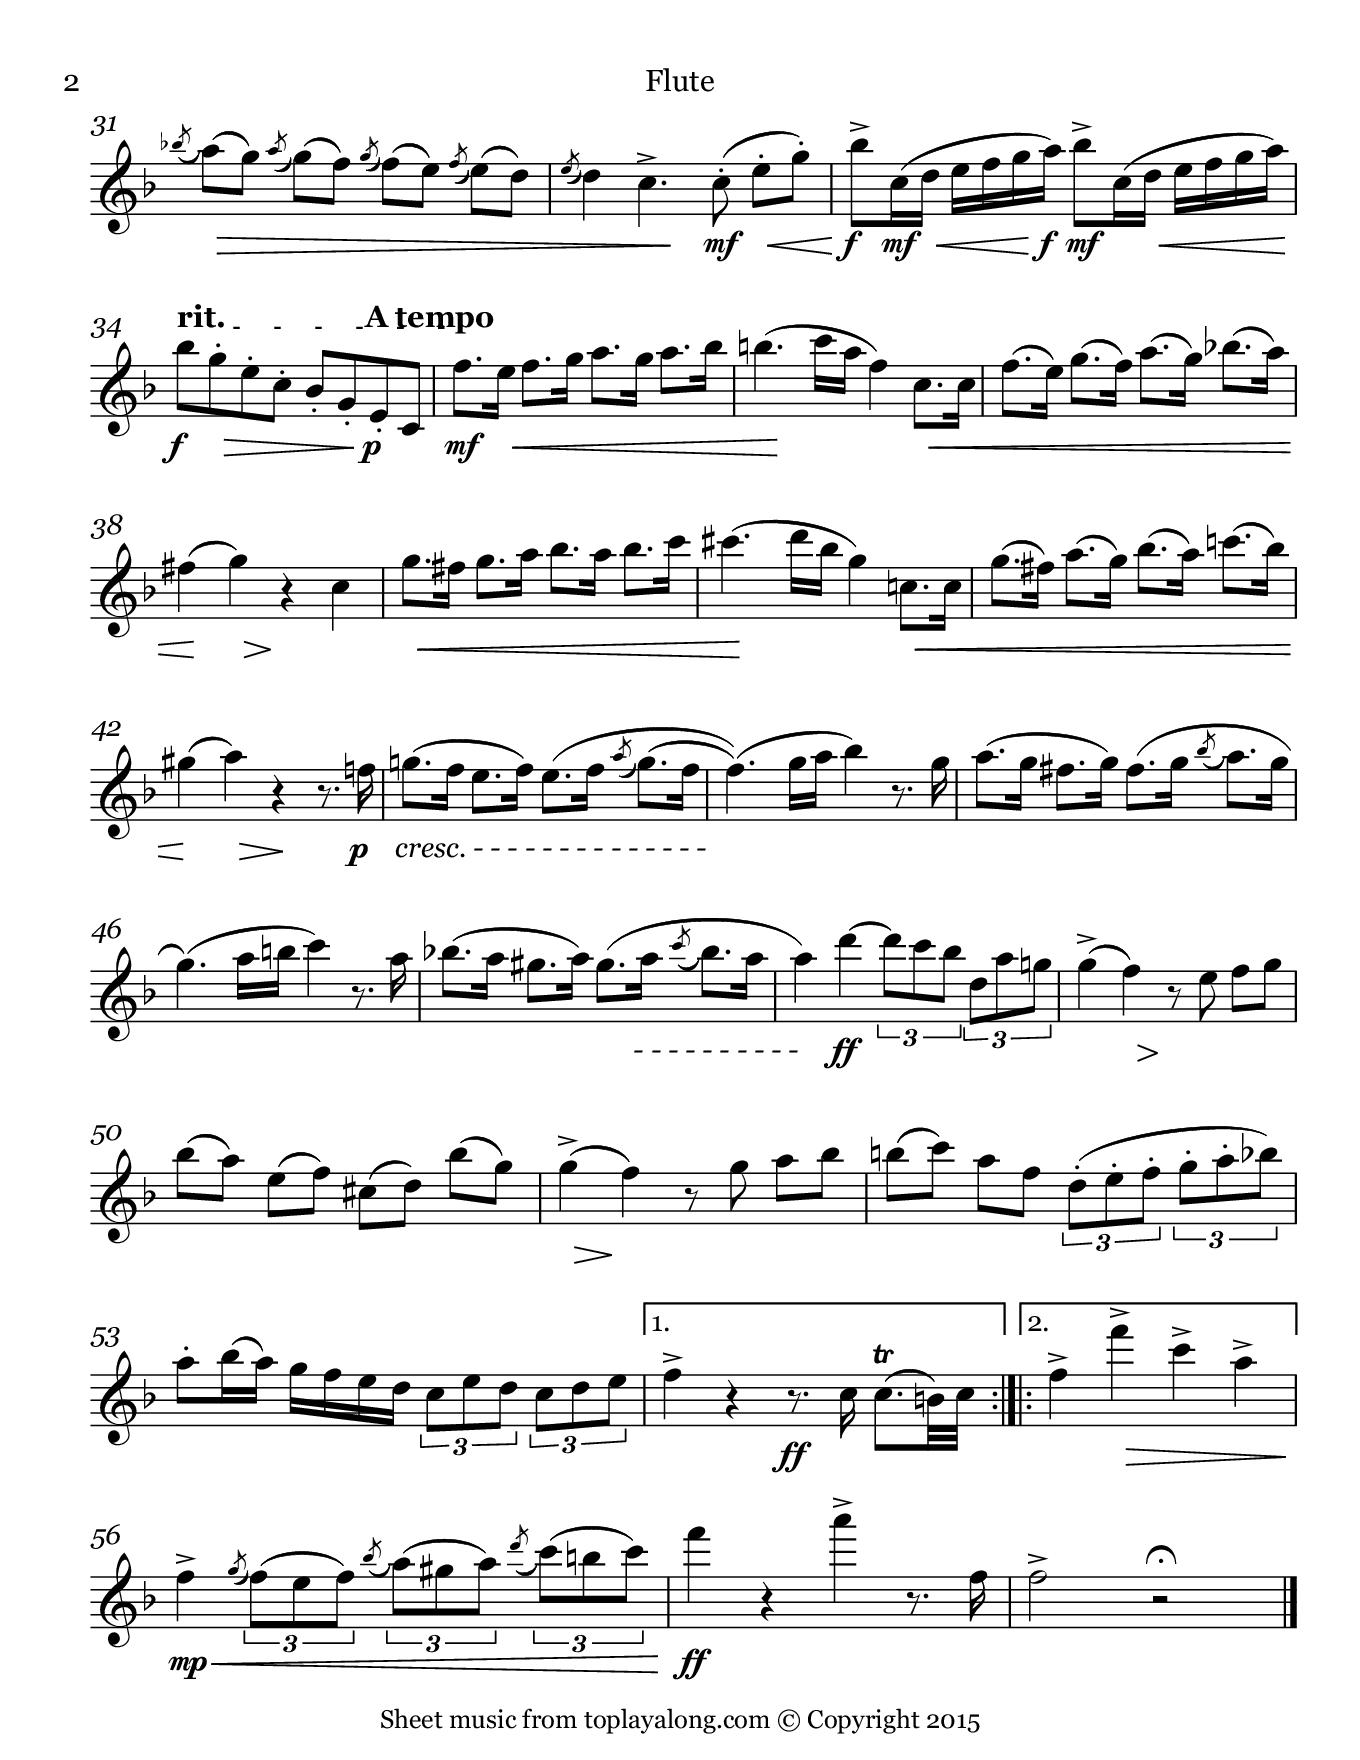 National Anthem of Brazil. Sheet music for Flute, page 2.